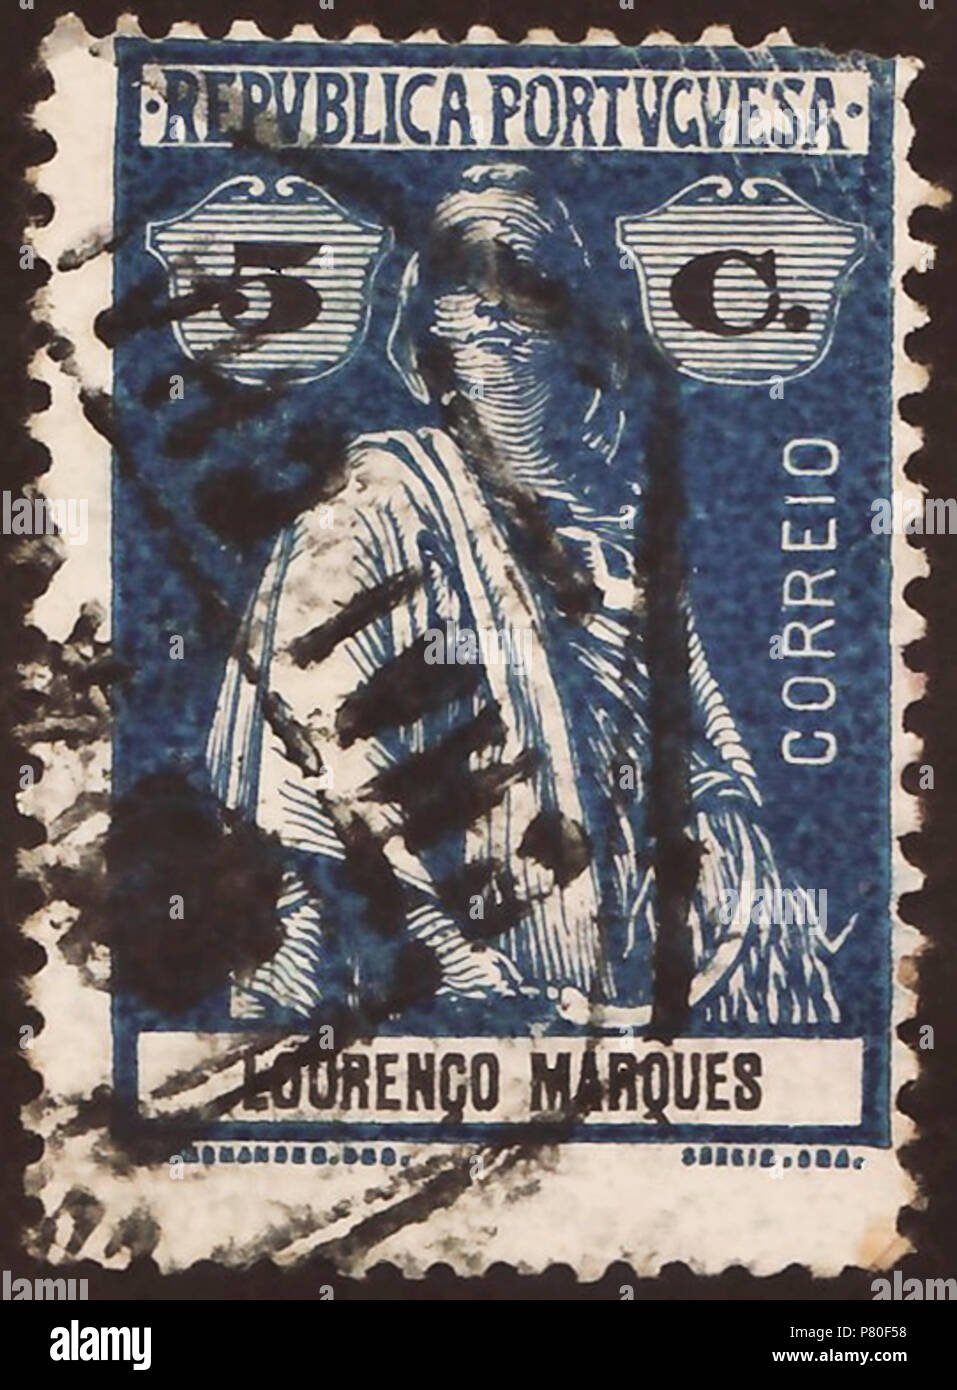 Stamp of Lourenço Marques (Portuguese Mozambique); 1914; definitive stamp of the issue 'Ceres - colonial issues'; stamp postmarked Stamp: Michel: No. 123; Yvert et Tellier: No. 123 Color: blue / black on 'reaper-coated' paper (Note: In the anglophone literature is sometime used the term 'reaper-coated' as description for the paper of these stamps without to amplify this. Probably, it's about an early process of paper coating by using of polymeric carbohydrate on basis of starch obtained from staple-food plants ('reaper plants').) Watermark: none Nominal value: 5 C. (Centavos) Postage validity: - Stock Image